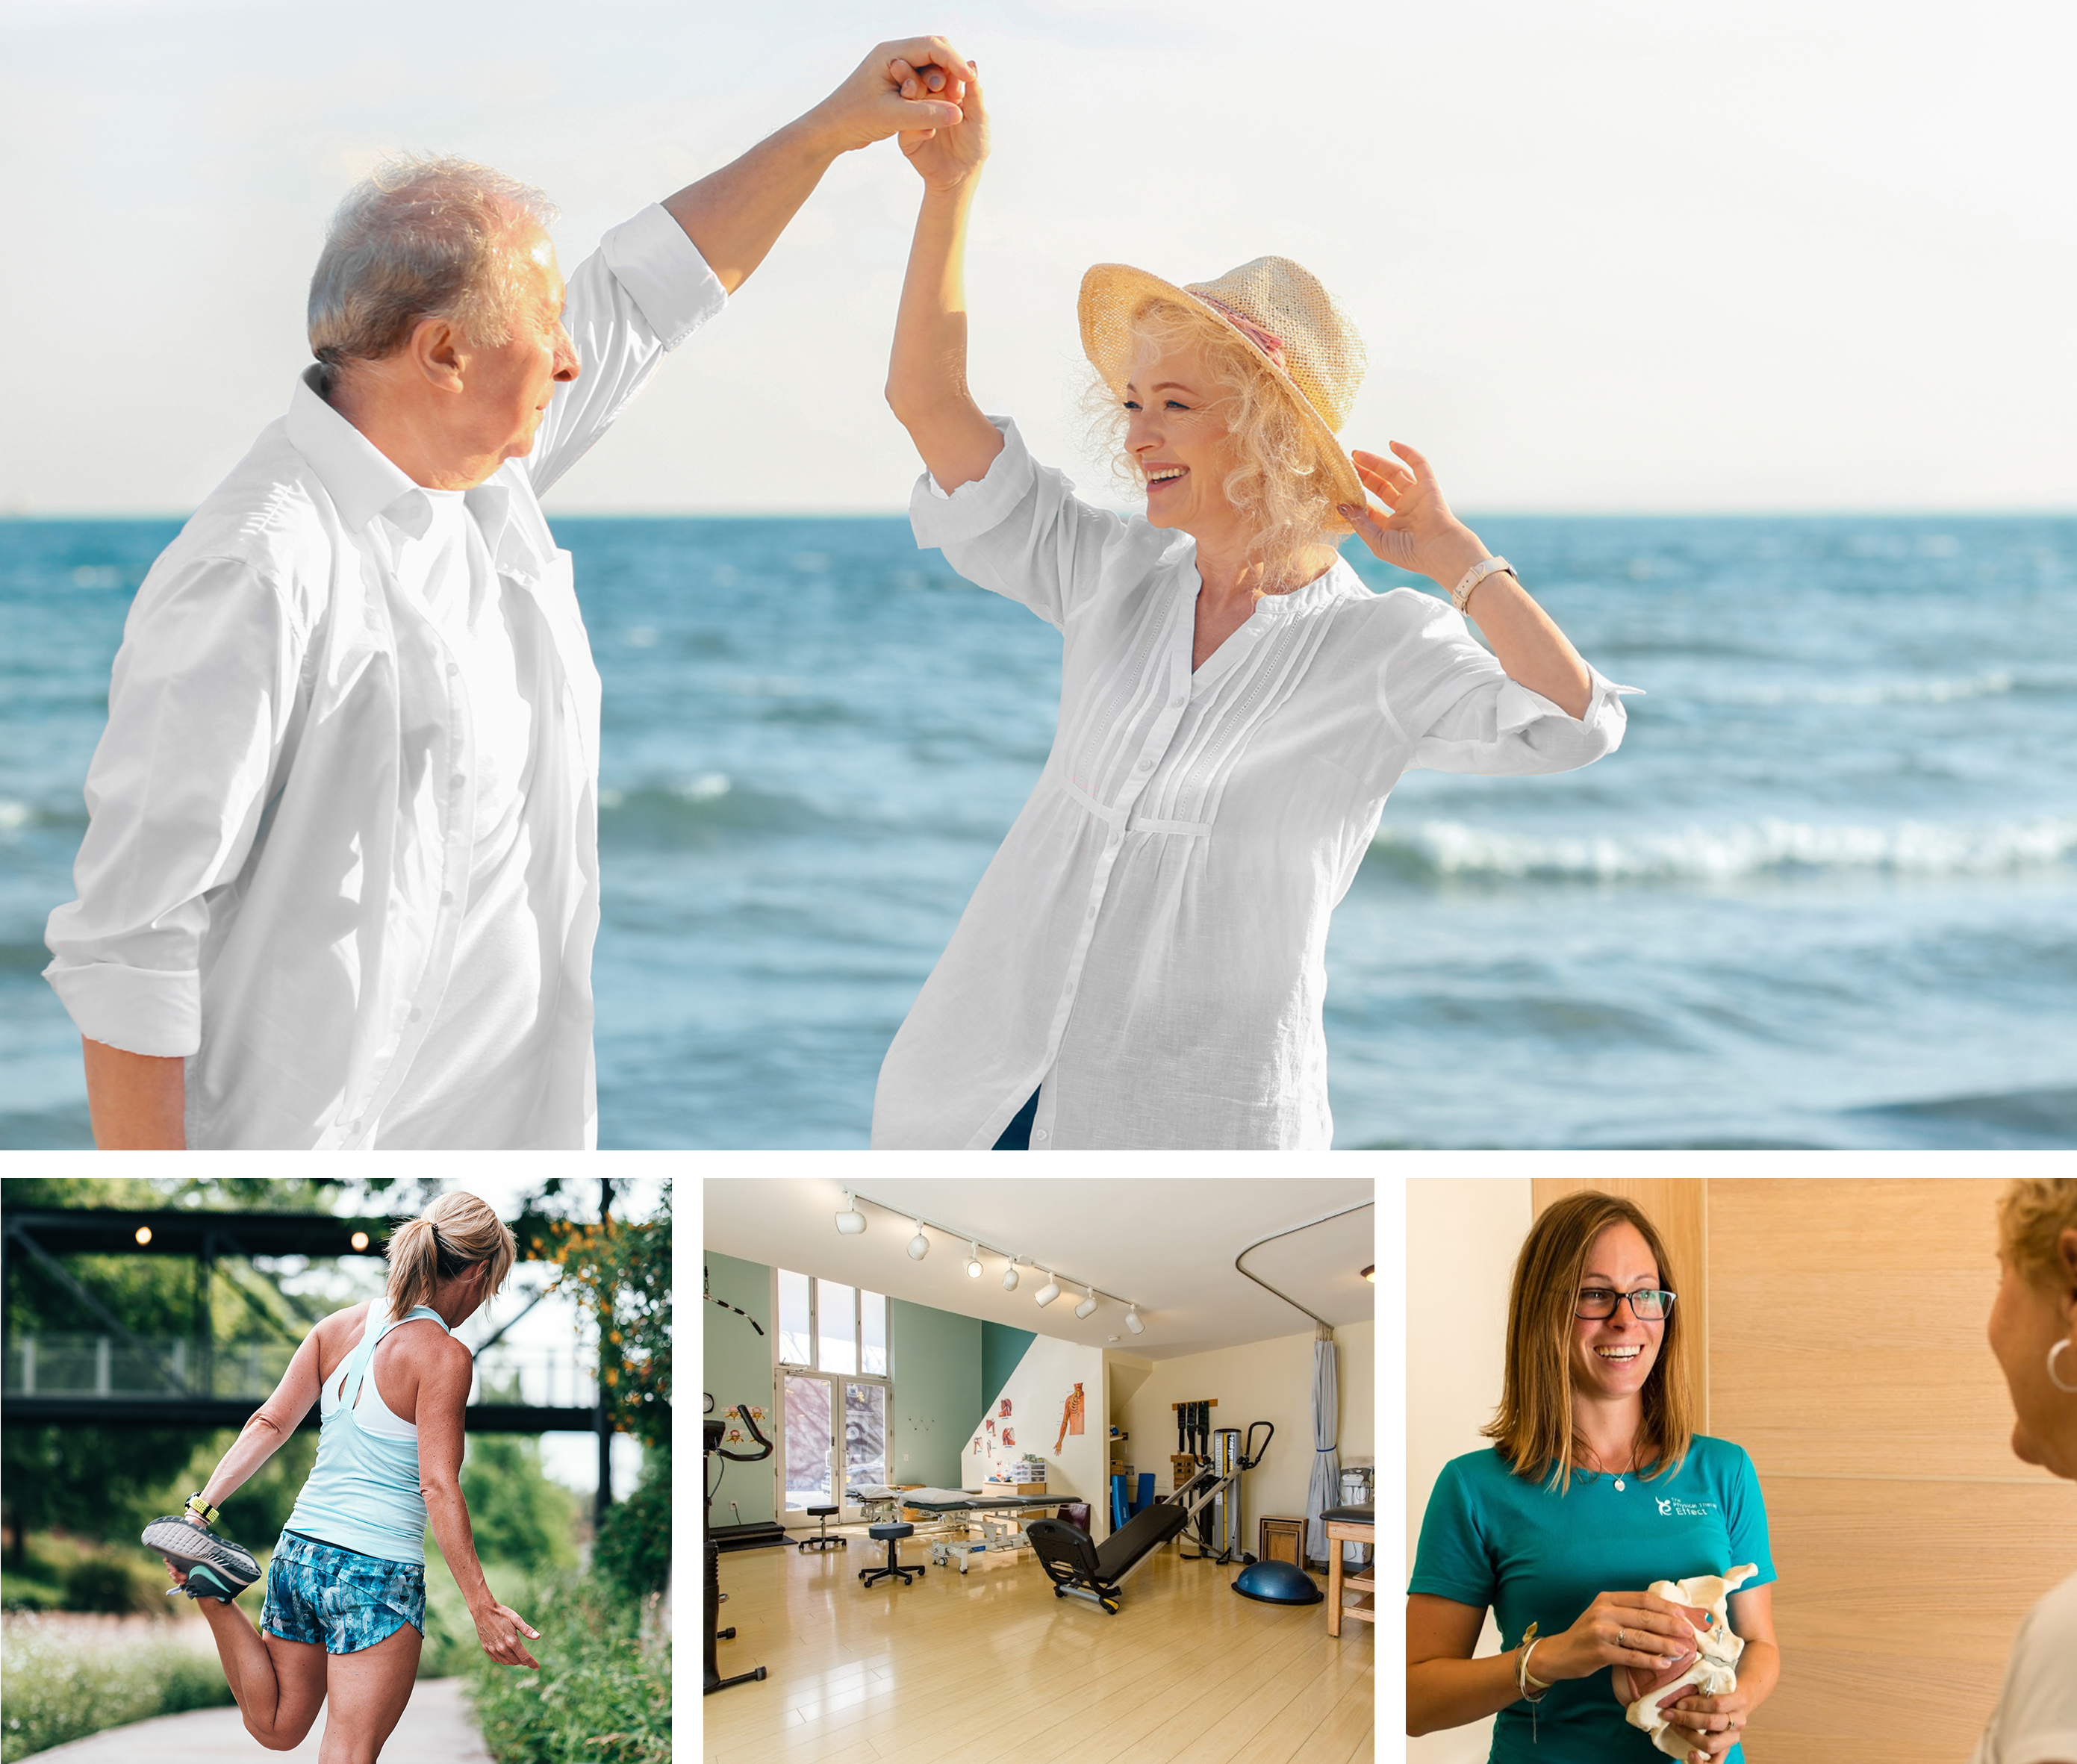 Balance training and fall prevention photo grid